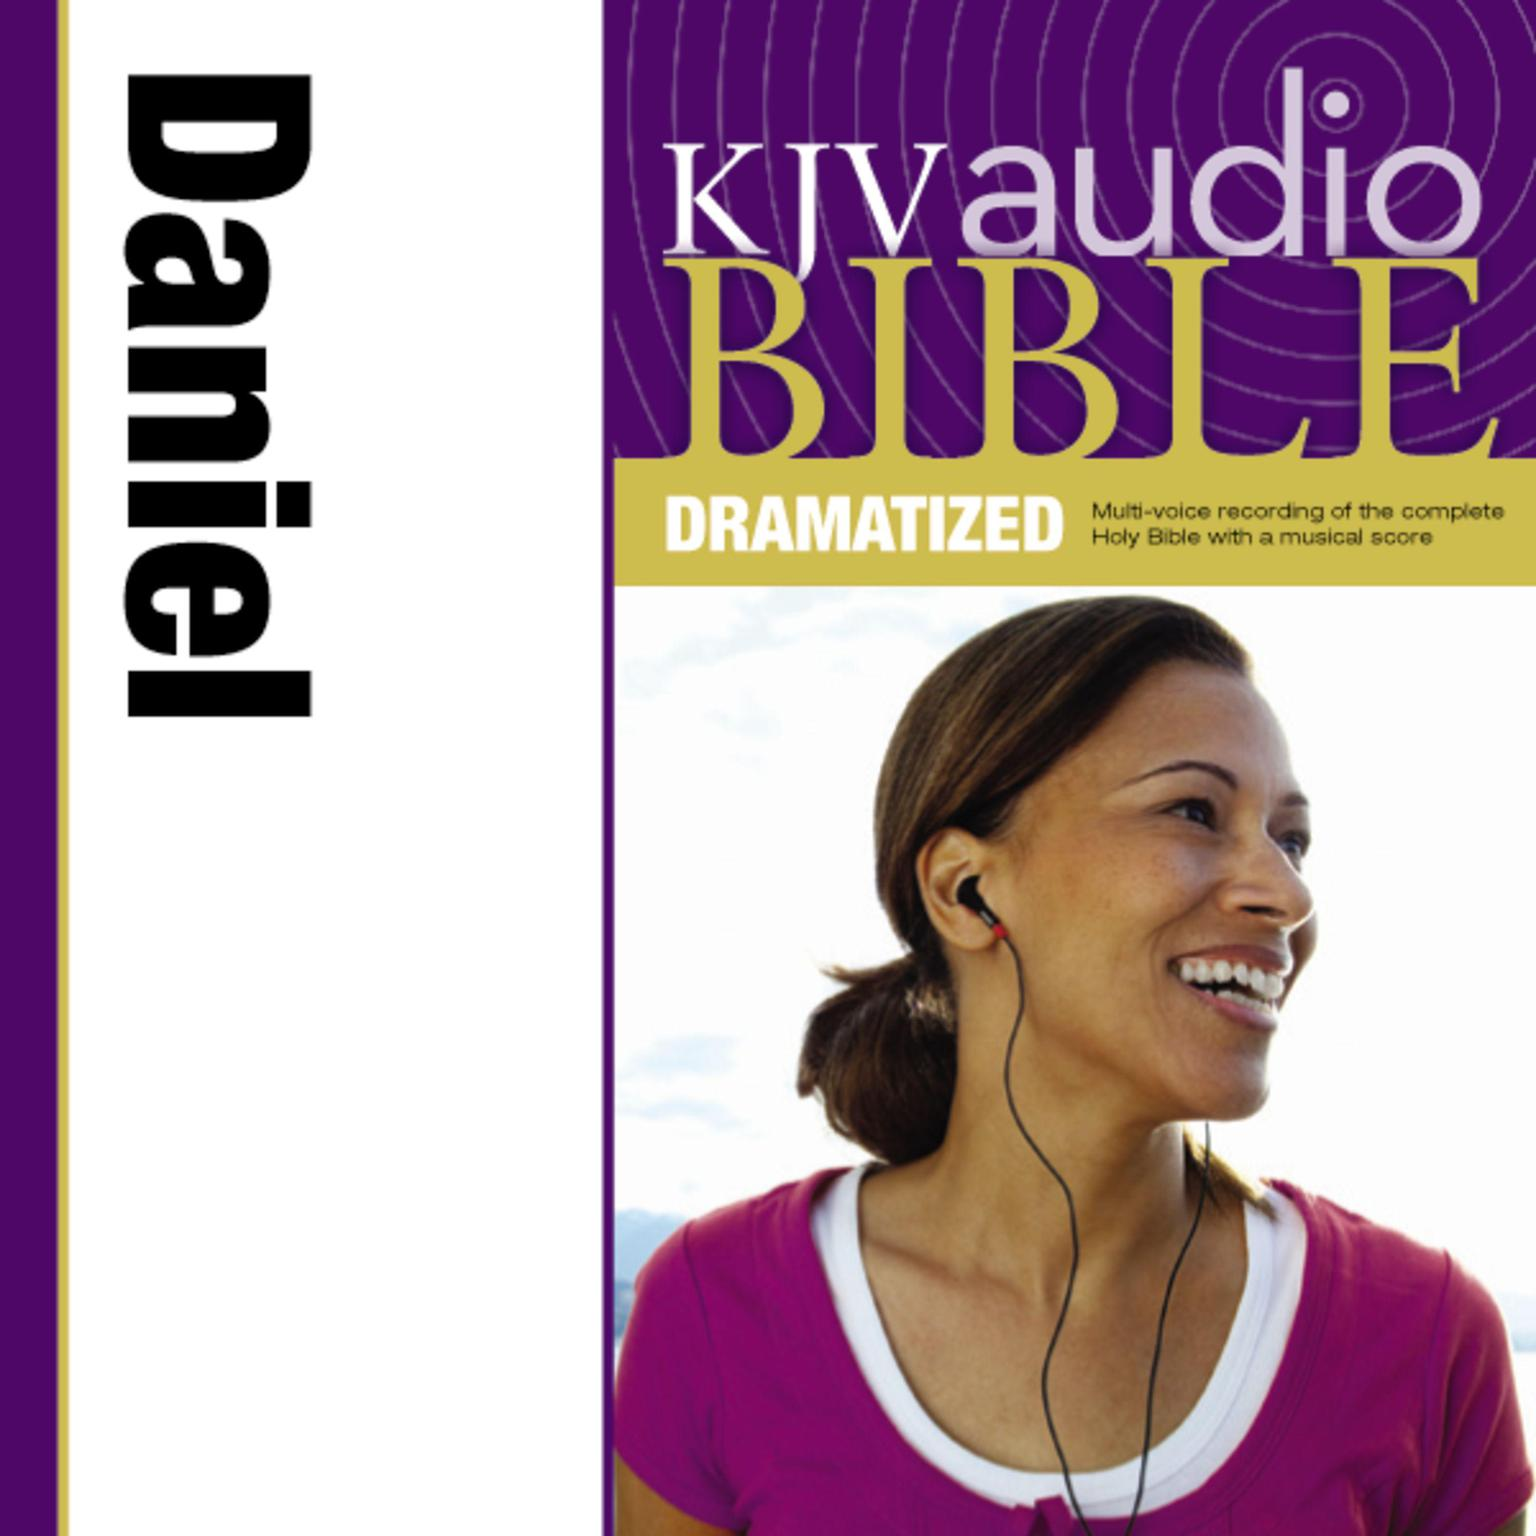 Printable KJV, Audio Bible, Dramatized: Daniel, Audio Download Audiobook Cover Art